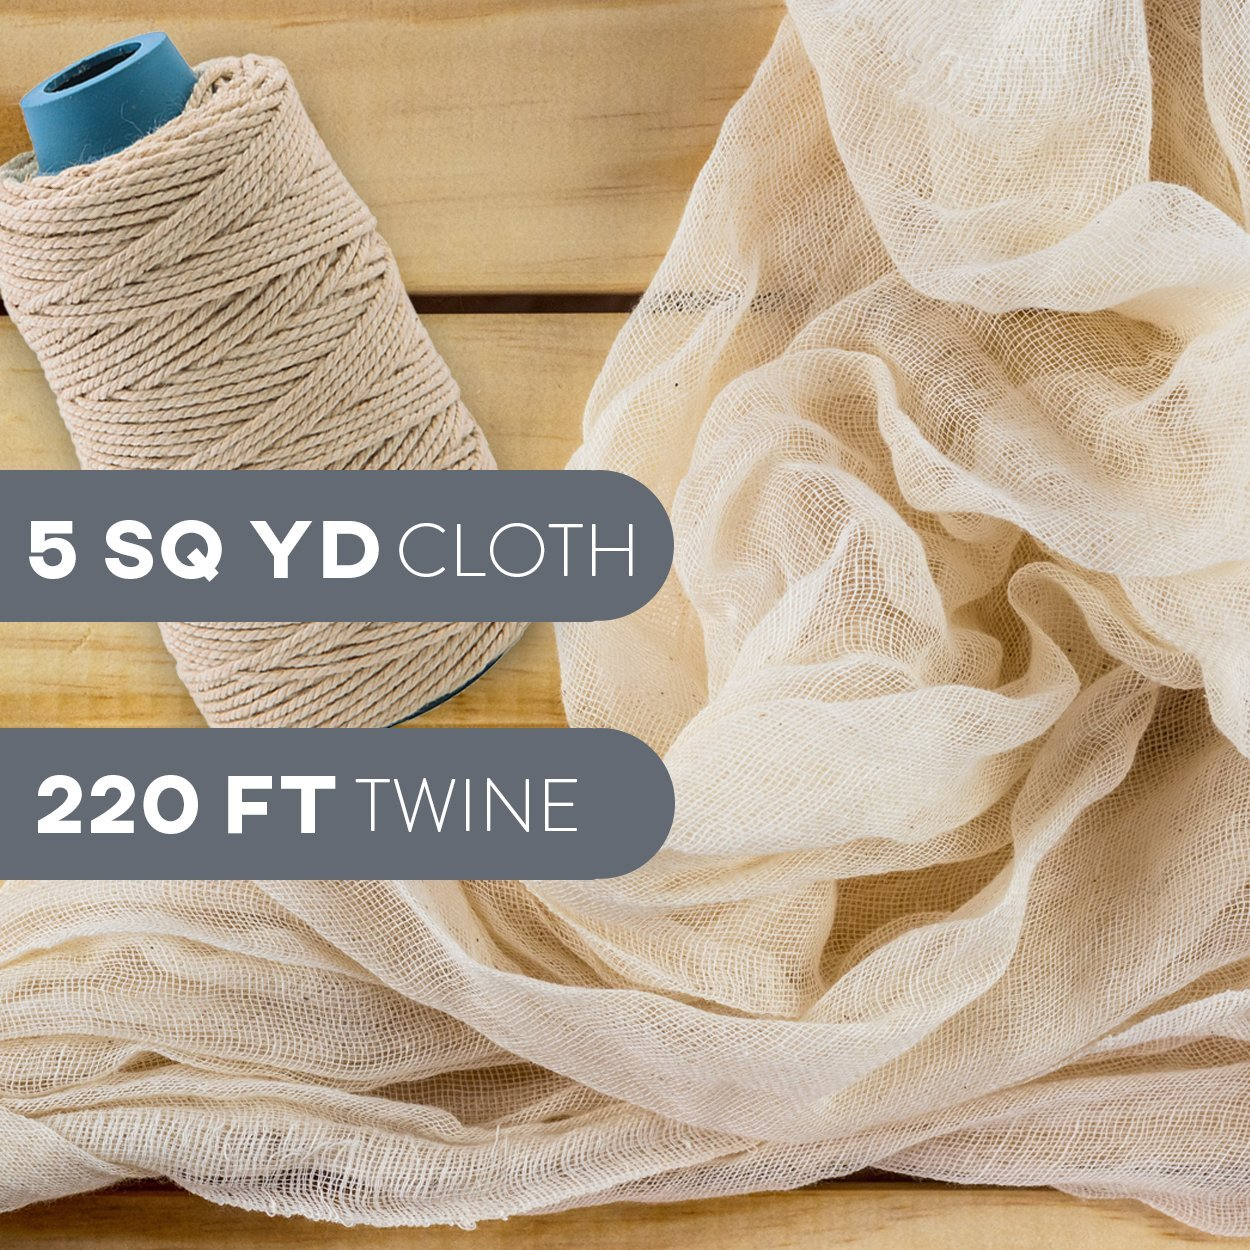 Cheesecloth and Cooking Twine - by Kitchen Gizmo, Grade 50 100% Unbleached Cotton (5 Yards/45 Sq. Feet) Cheese Cloth for Straining with 220 Ft Butchers Twine by Kitchen Gizmo (Image #2)